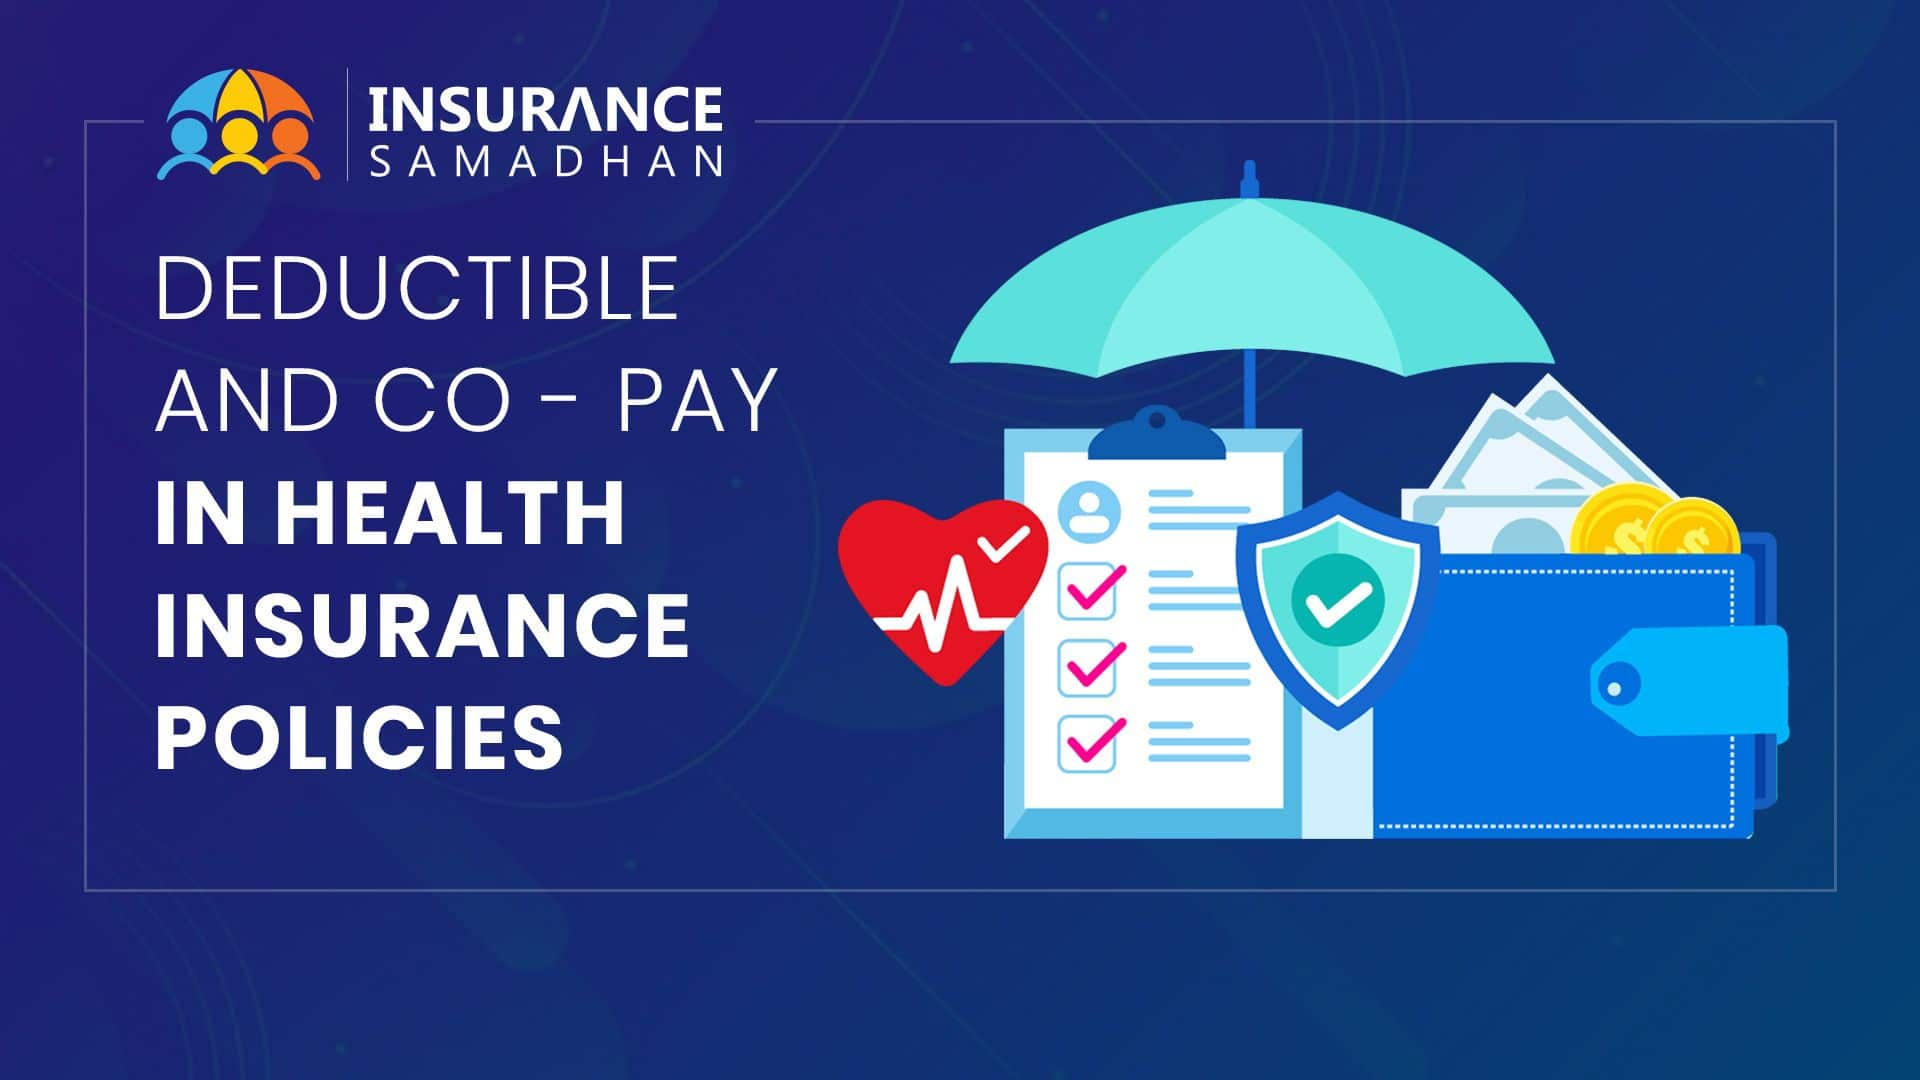 Role of Deductible and Co-Pay in Health Insurance Policies